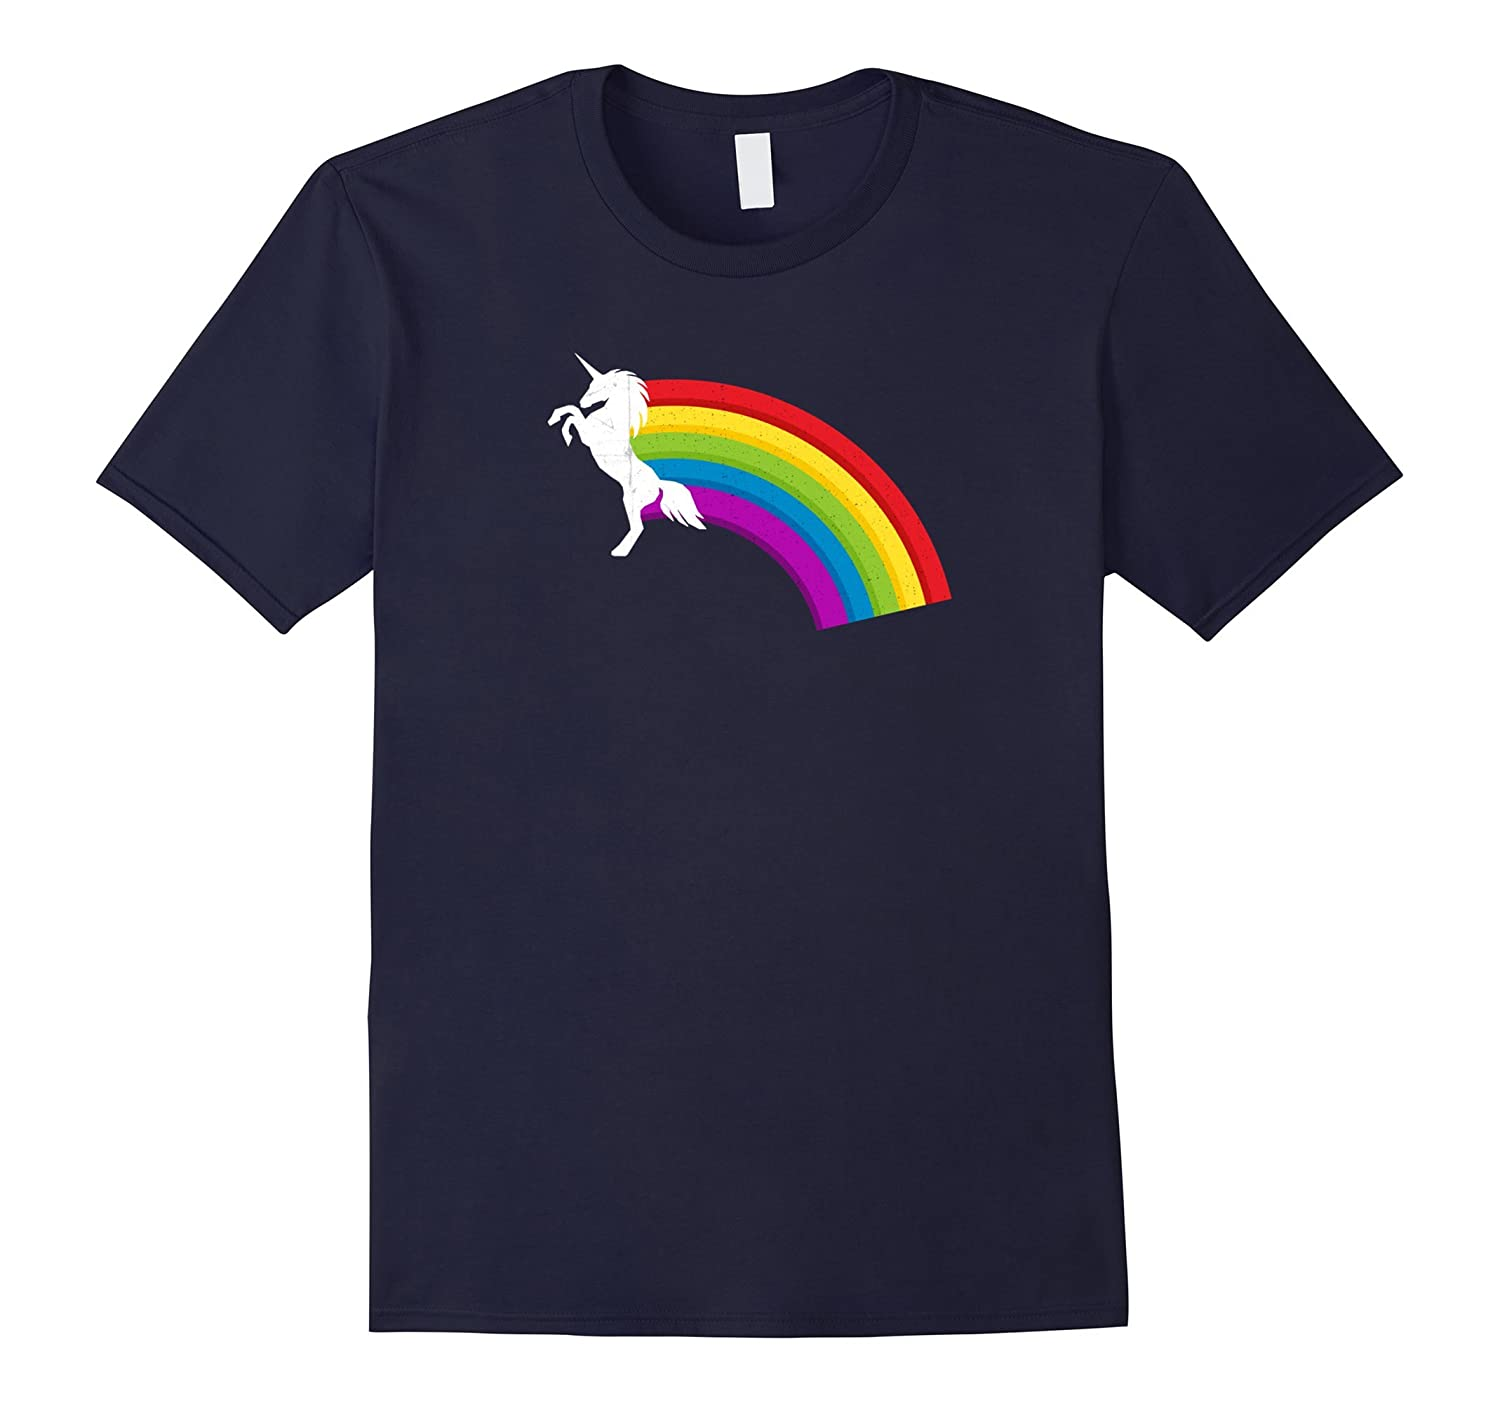 Vintage Unicorn 80s Retro Humor Inspired Top Novelty T-Shirt-FL